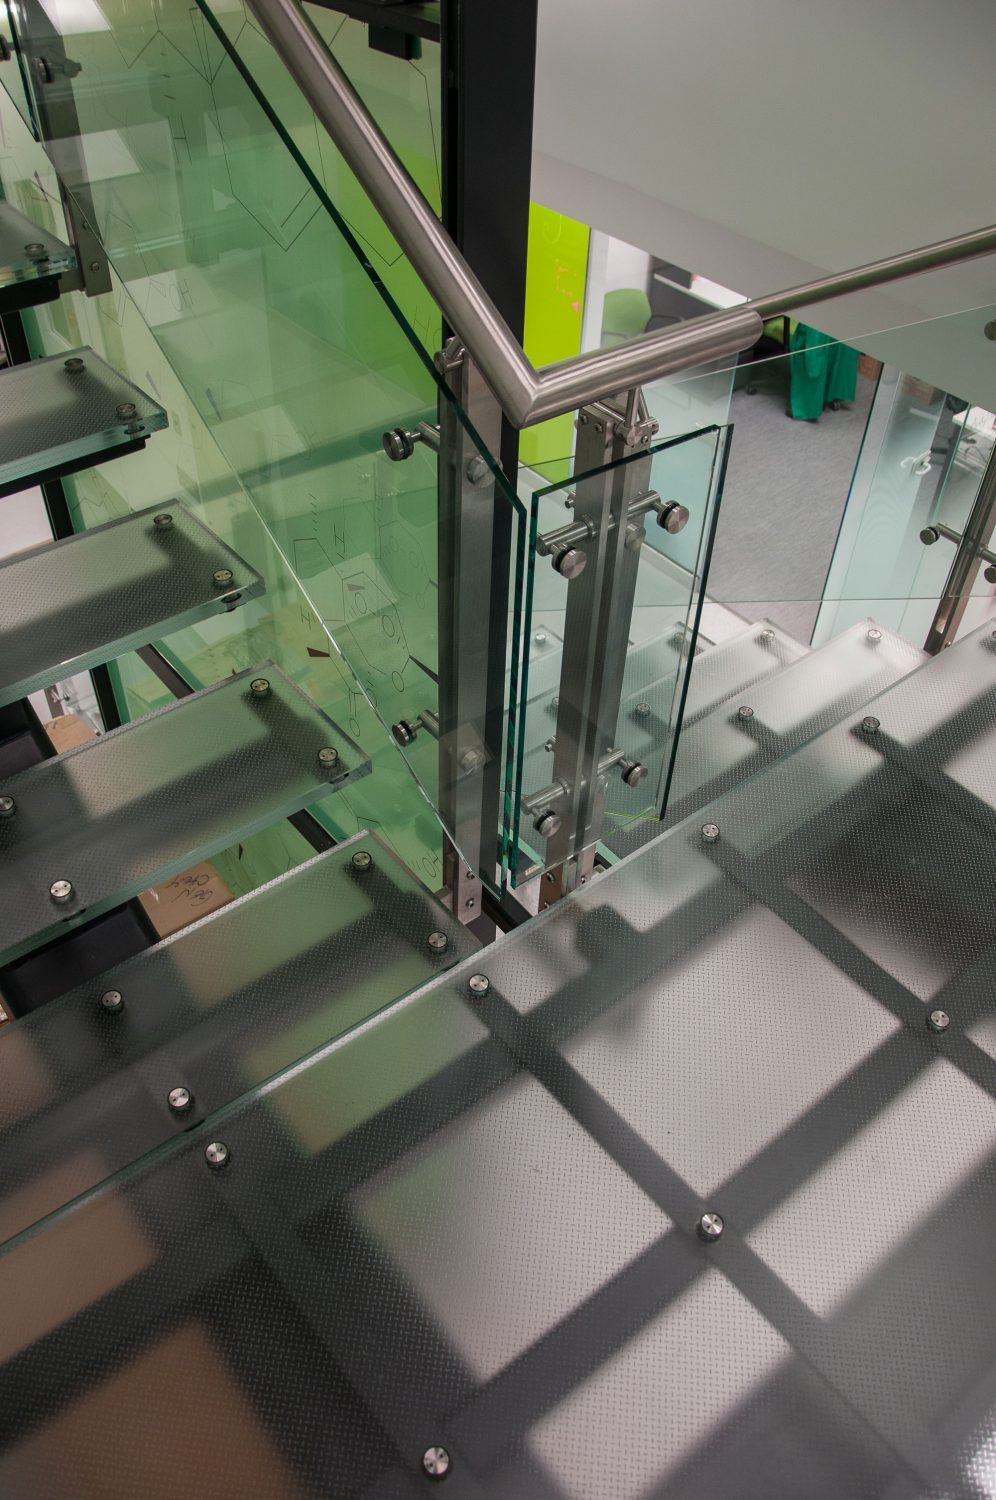 Pavillon Aluminium Glas Glass Railings Archives Page 2 Of 2 Summa Architectural